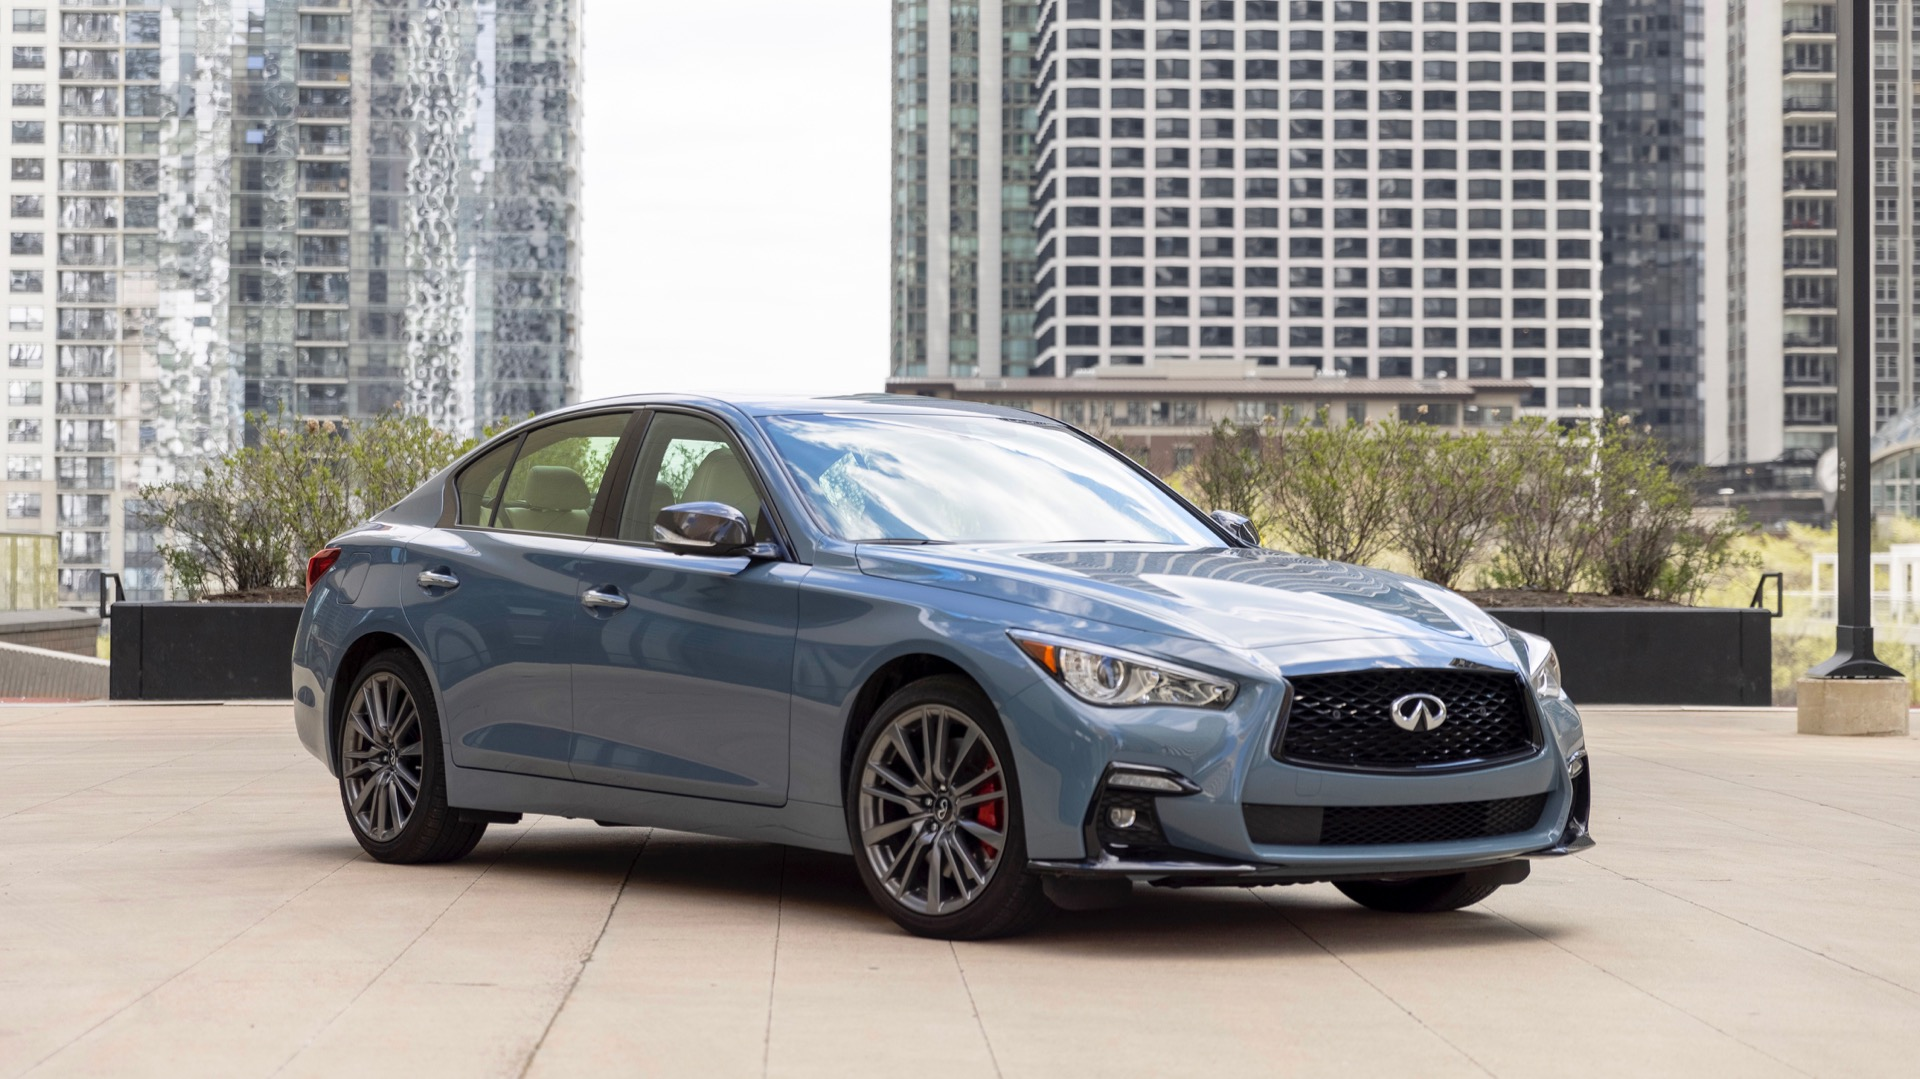 Preview: 2022 Infiniti Q50 adds wireless Apple CarPlay, more standard features